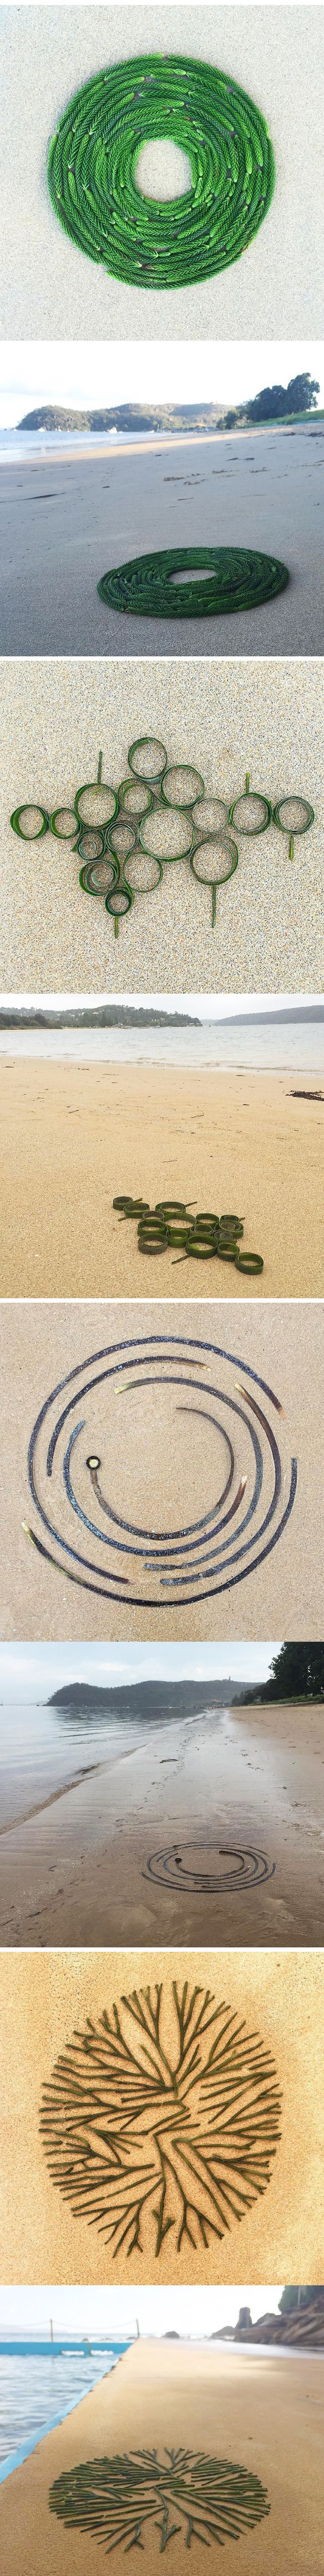 leonie barton (beach debris turned into art. daily project)